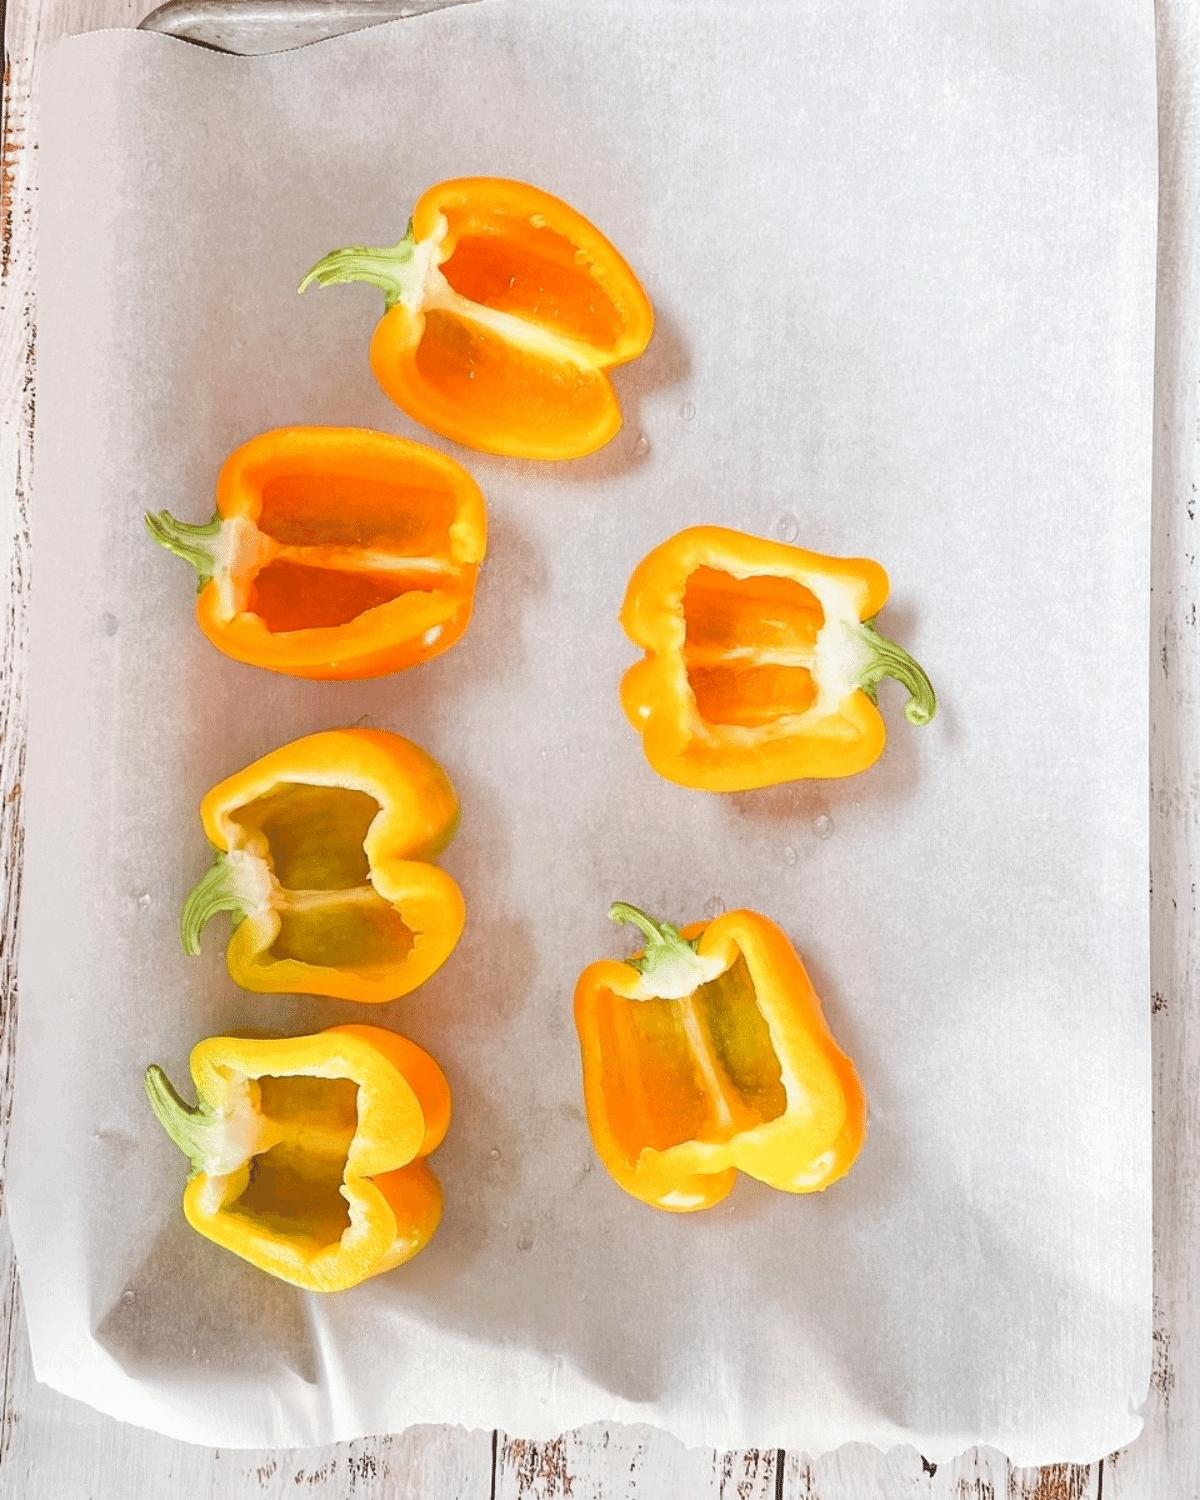 Sweet peppers sliced in half with seeds and membranes removed, placed on parchment paper on baking sheet